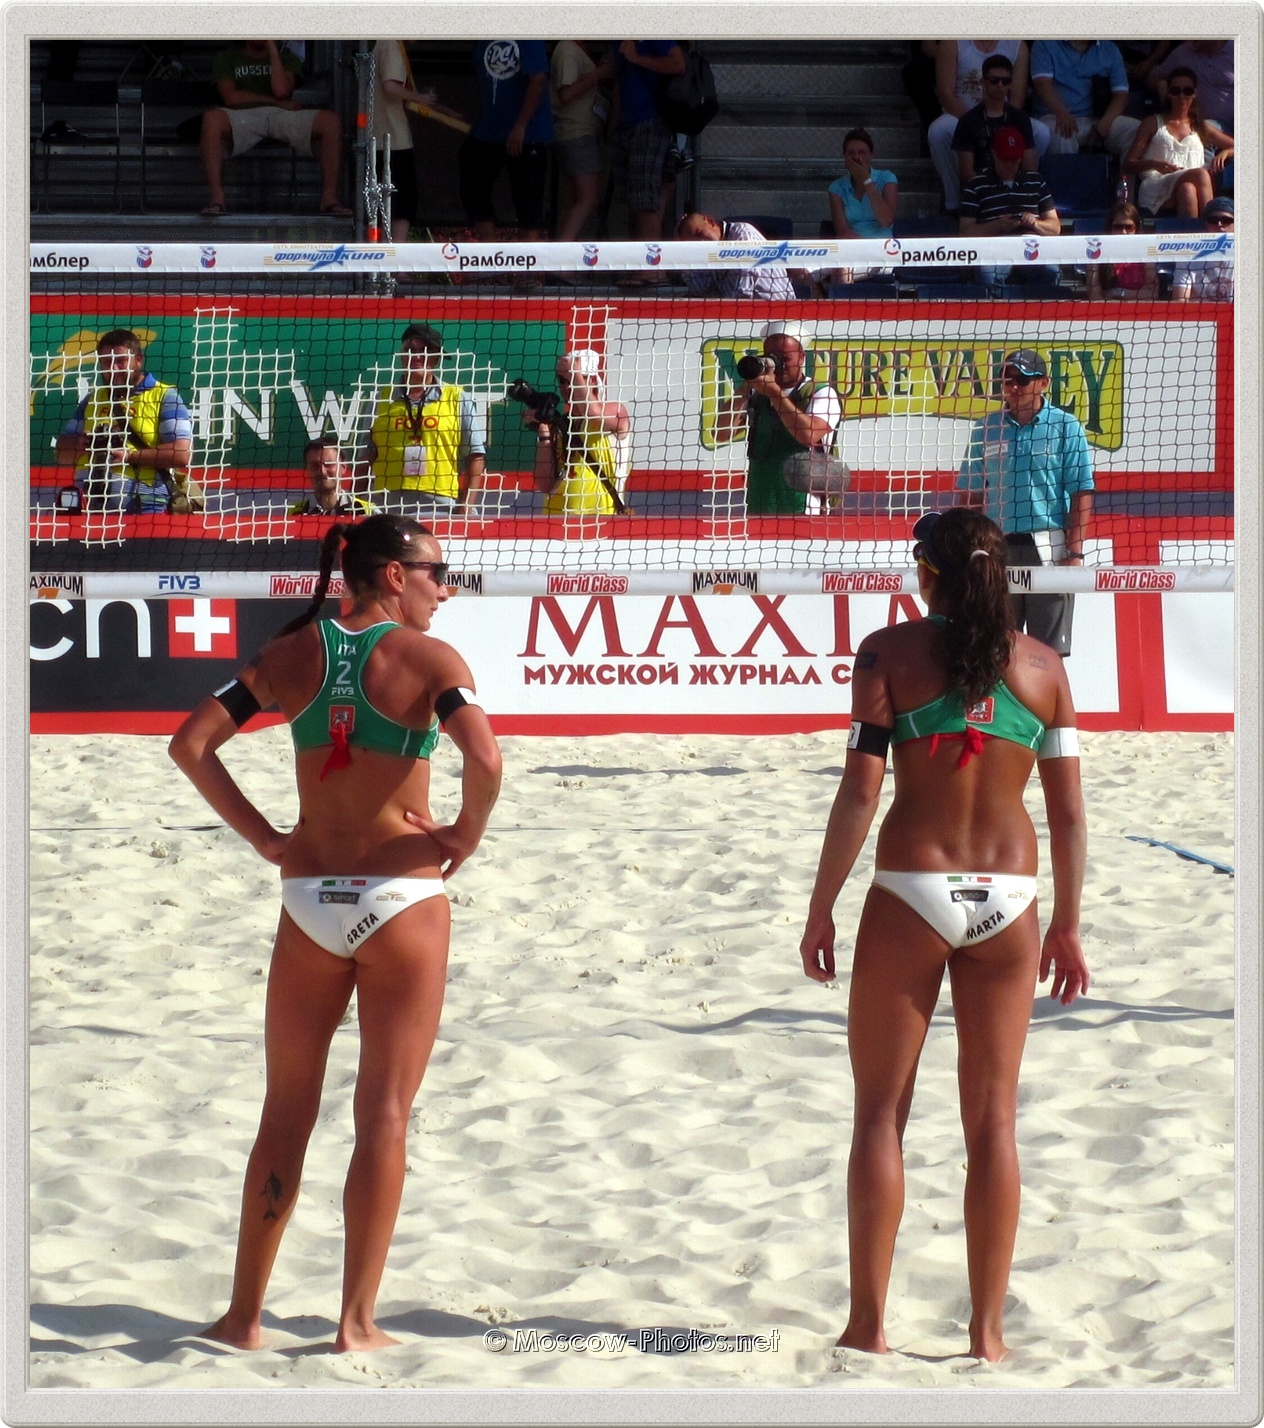 Italian Women's Beach Volleyball Team in Moscow